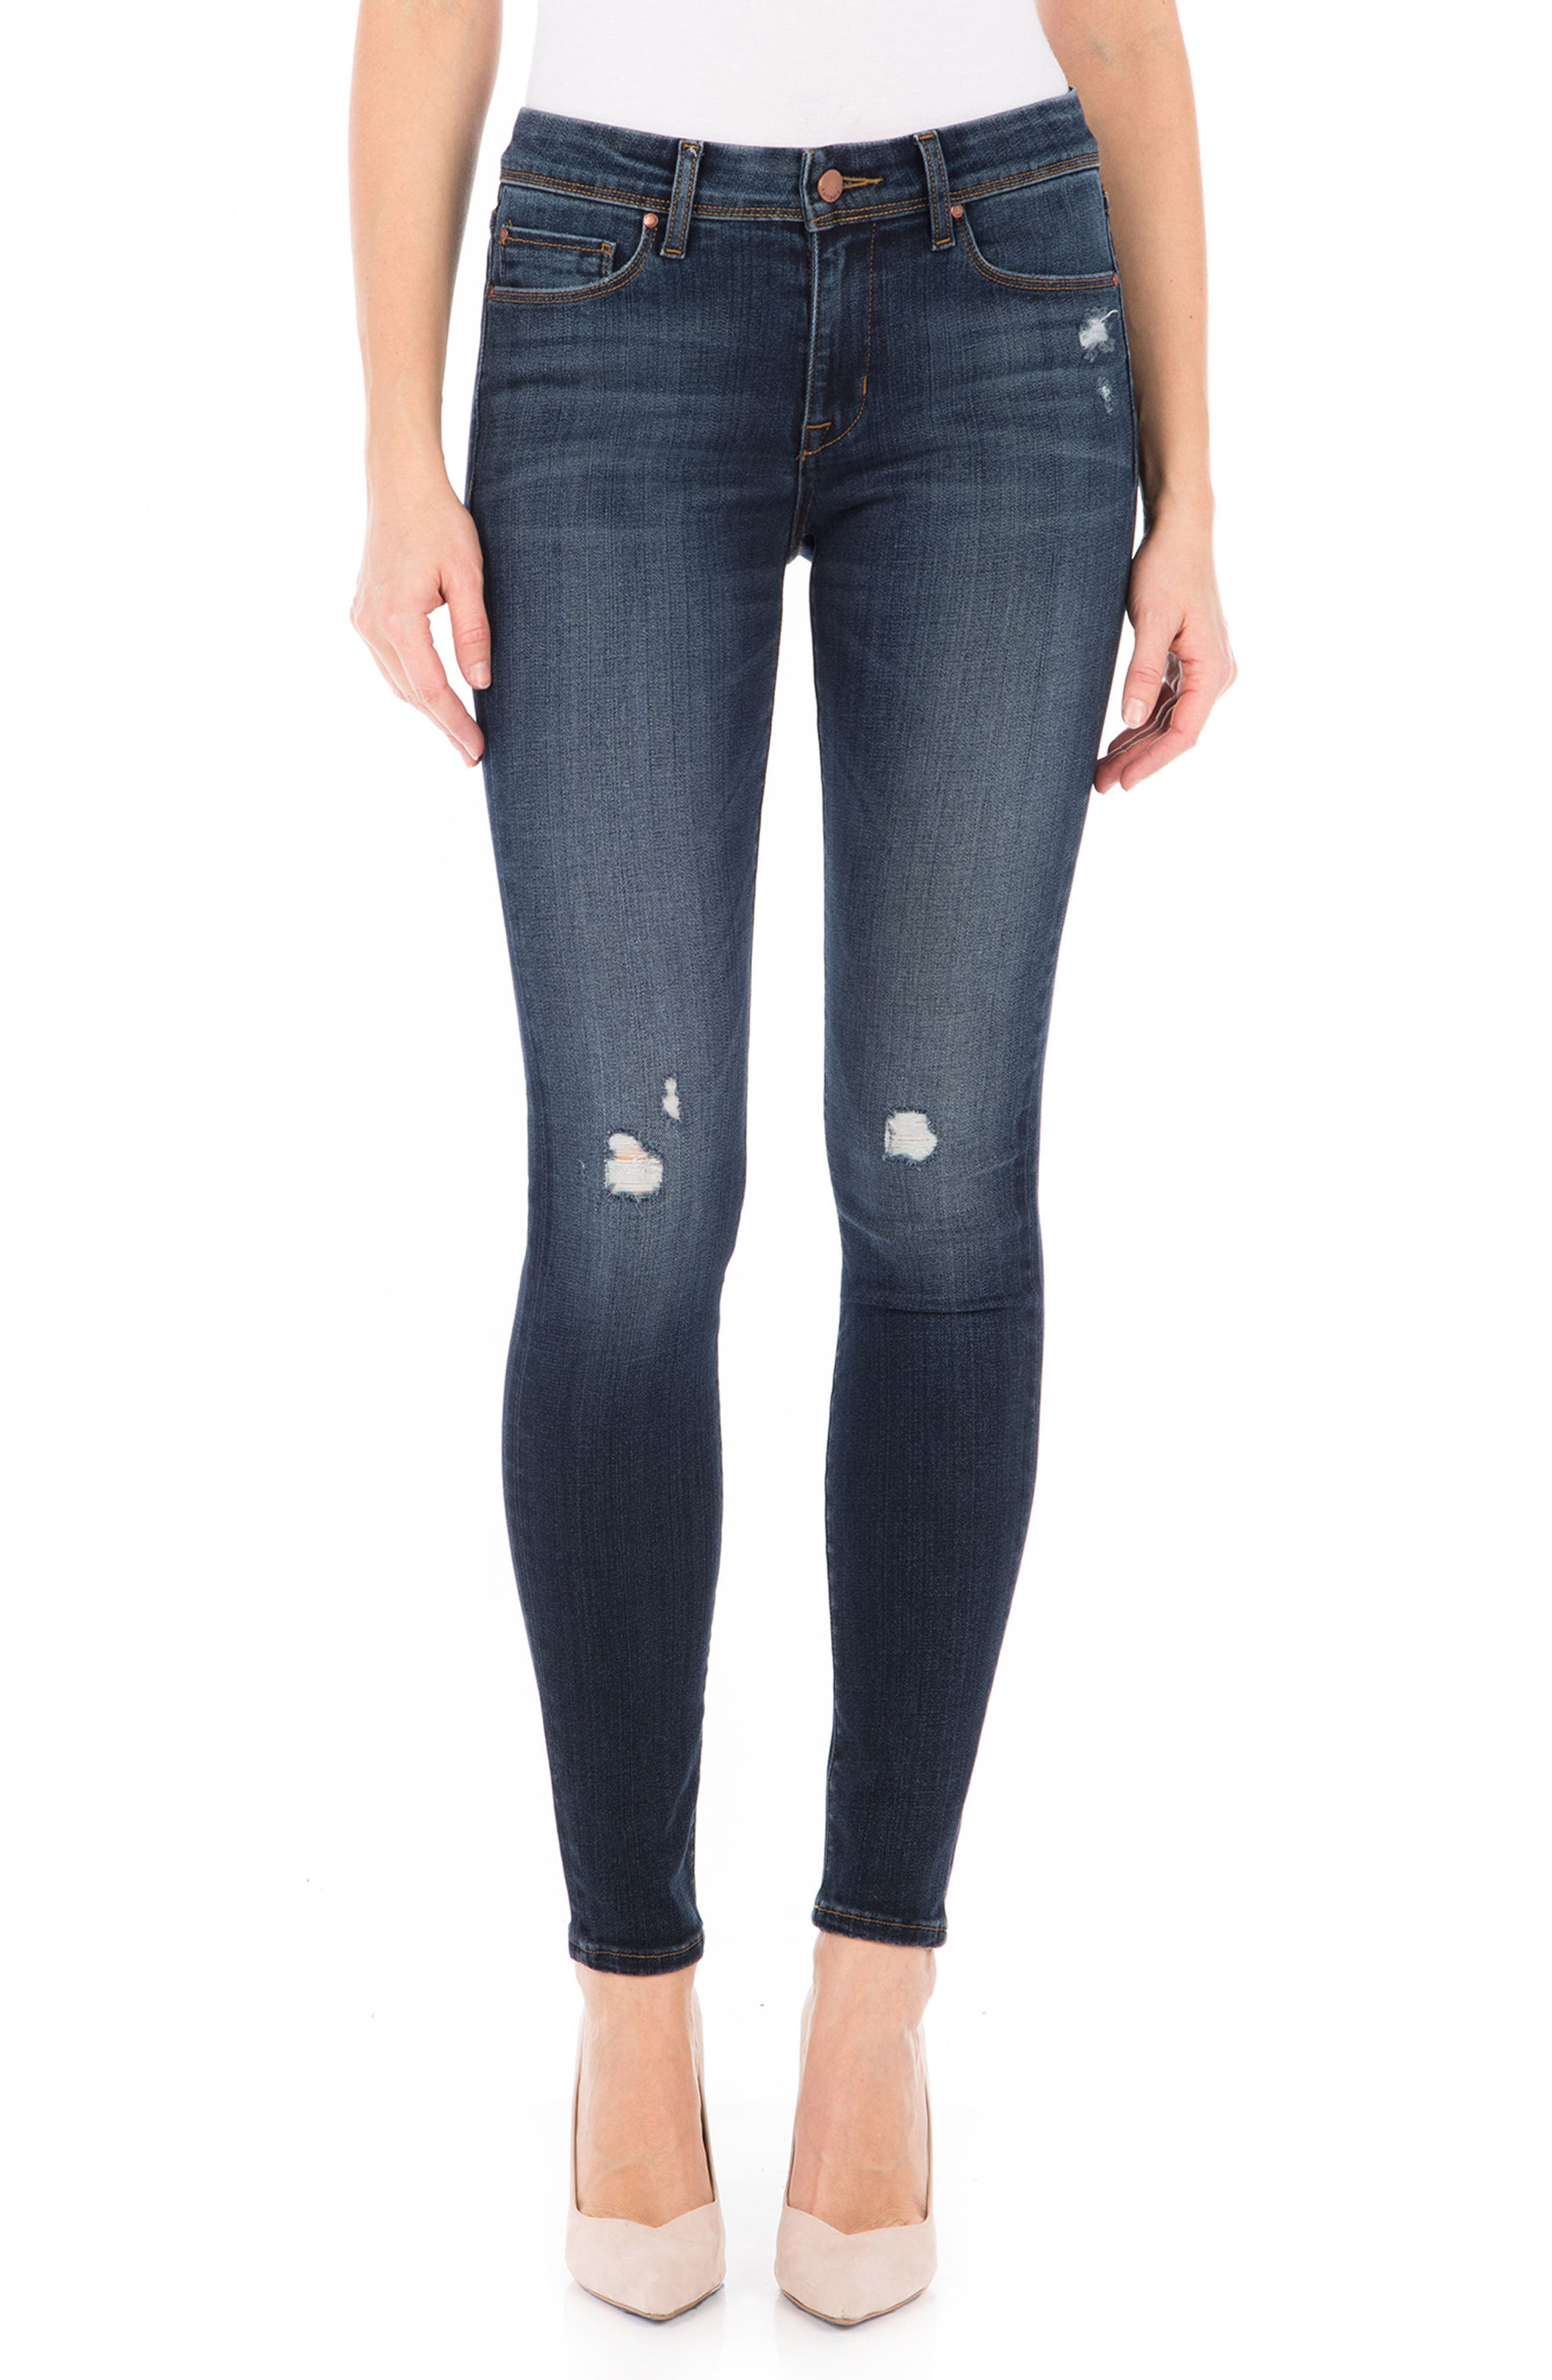 Belvedere Skinny Jeans,                             Main thumbnail 1, color,                             400